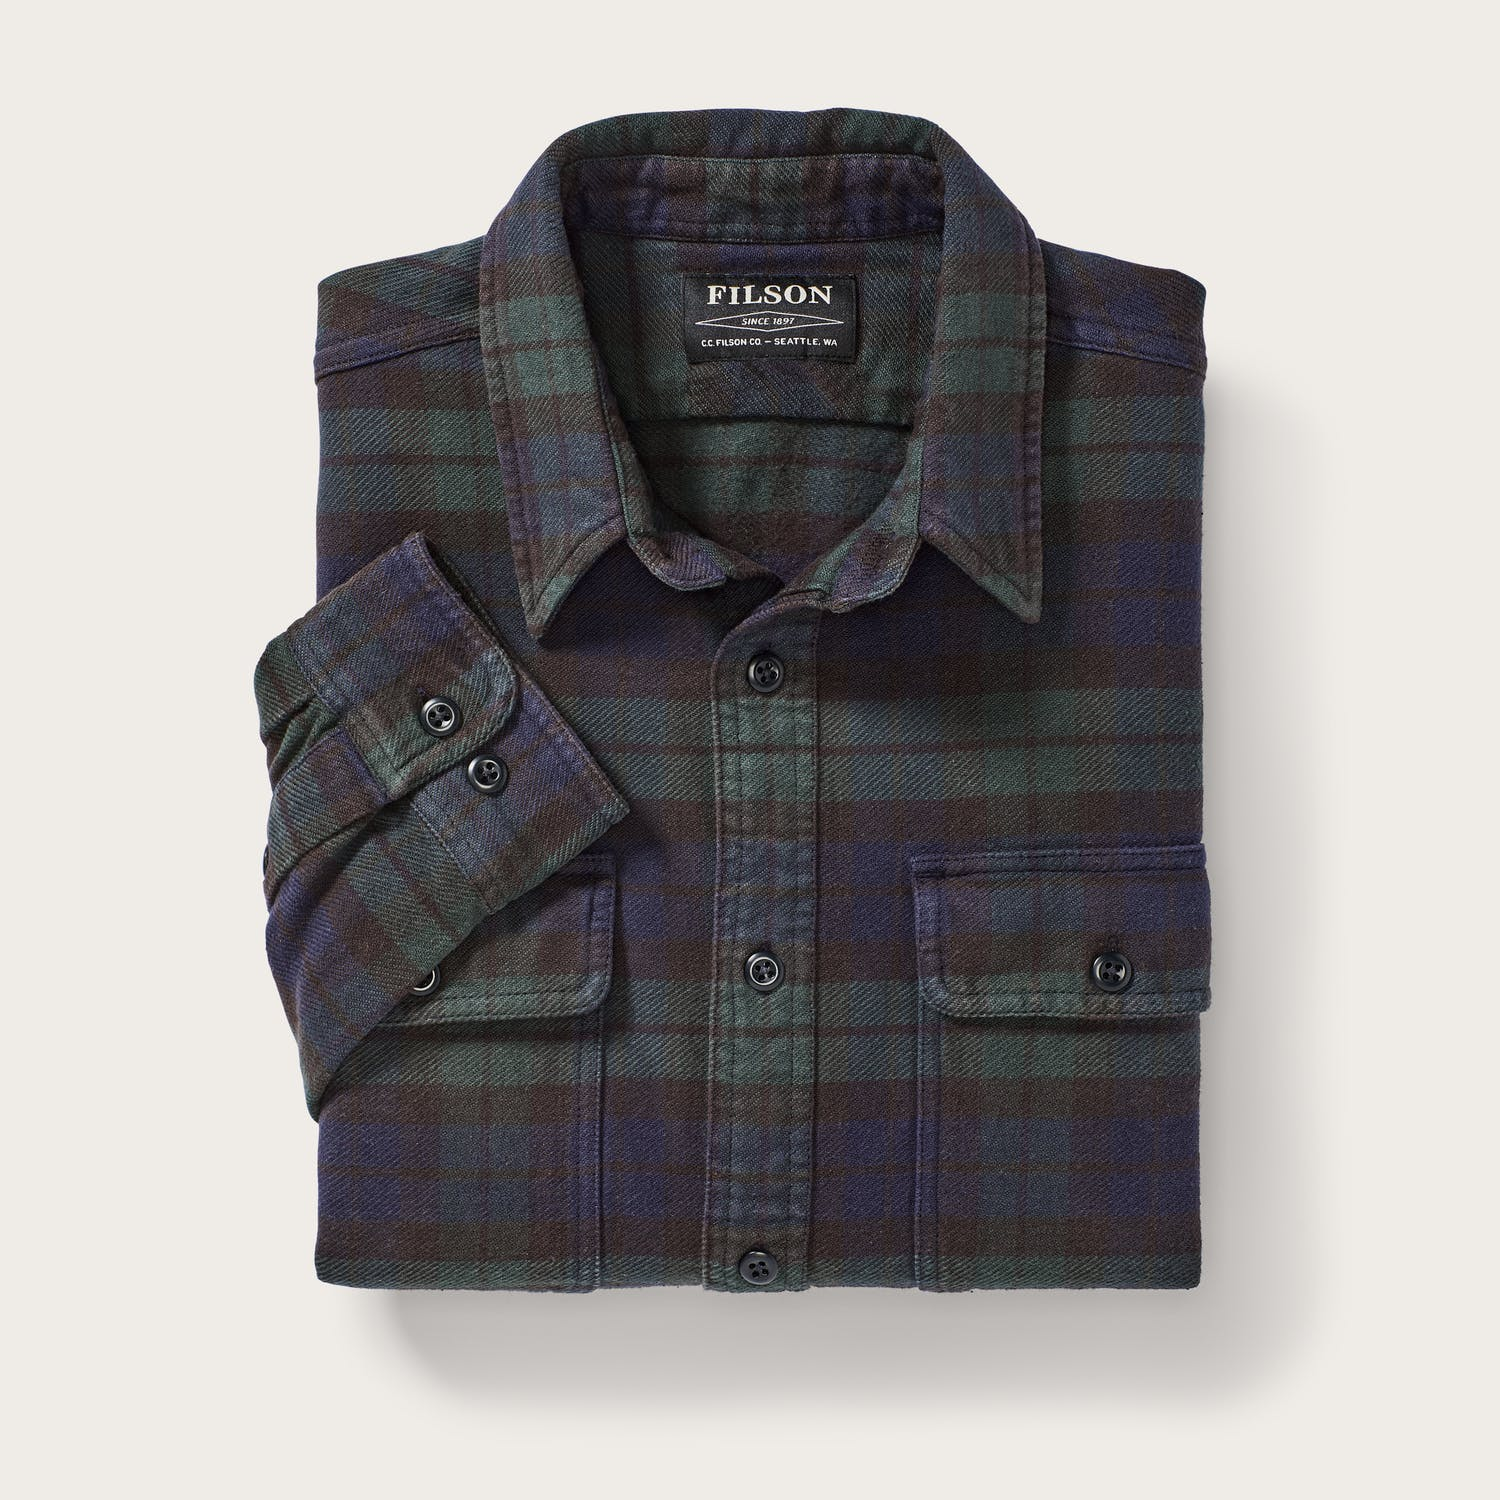 Filson - Vintage Flannel Work Shirt - The Populess Company